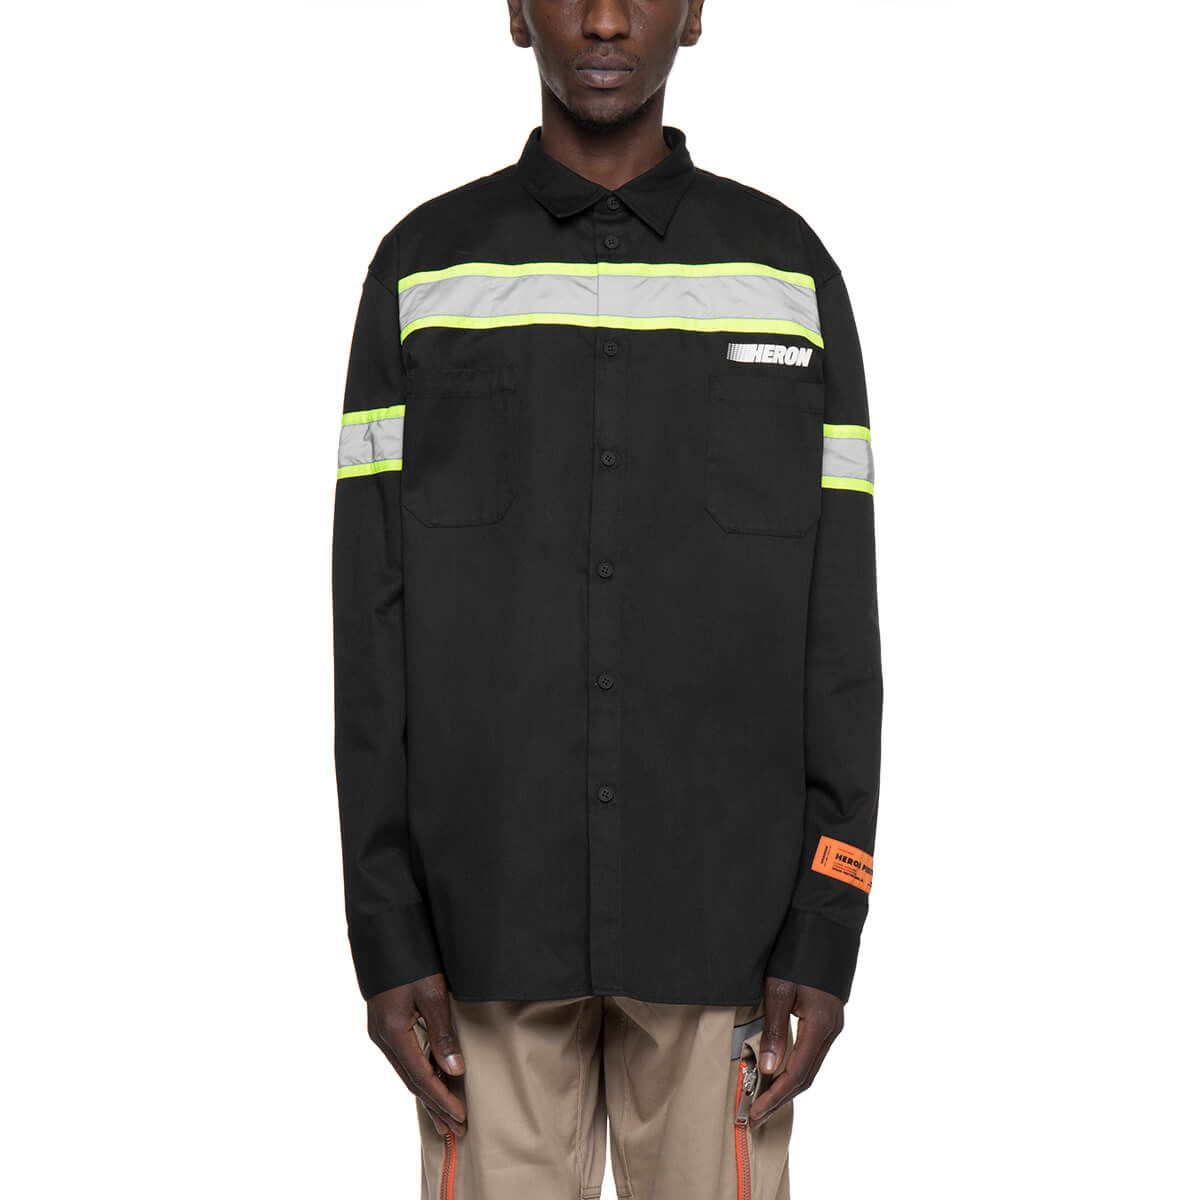 HERON PRESTON Ctnmb Reflector Shirt